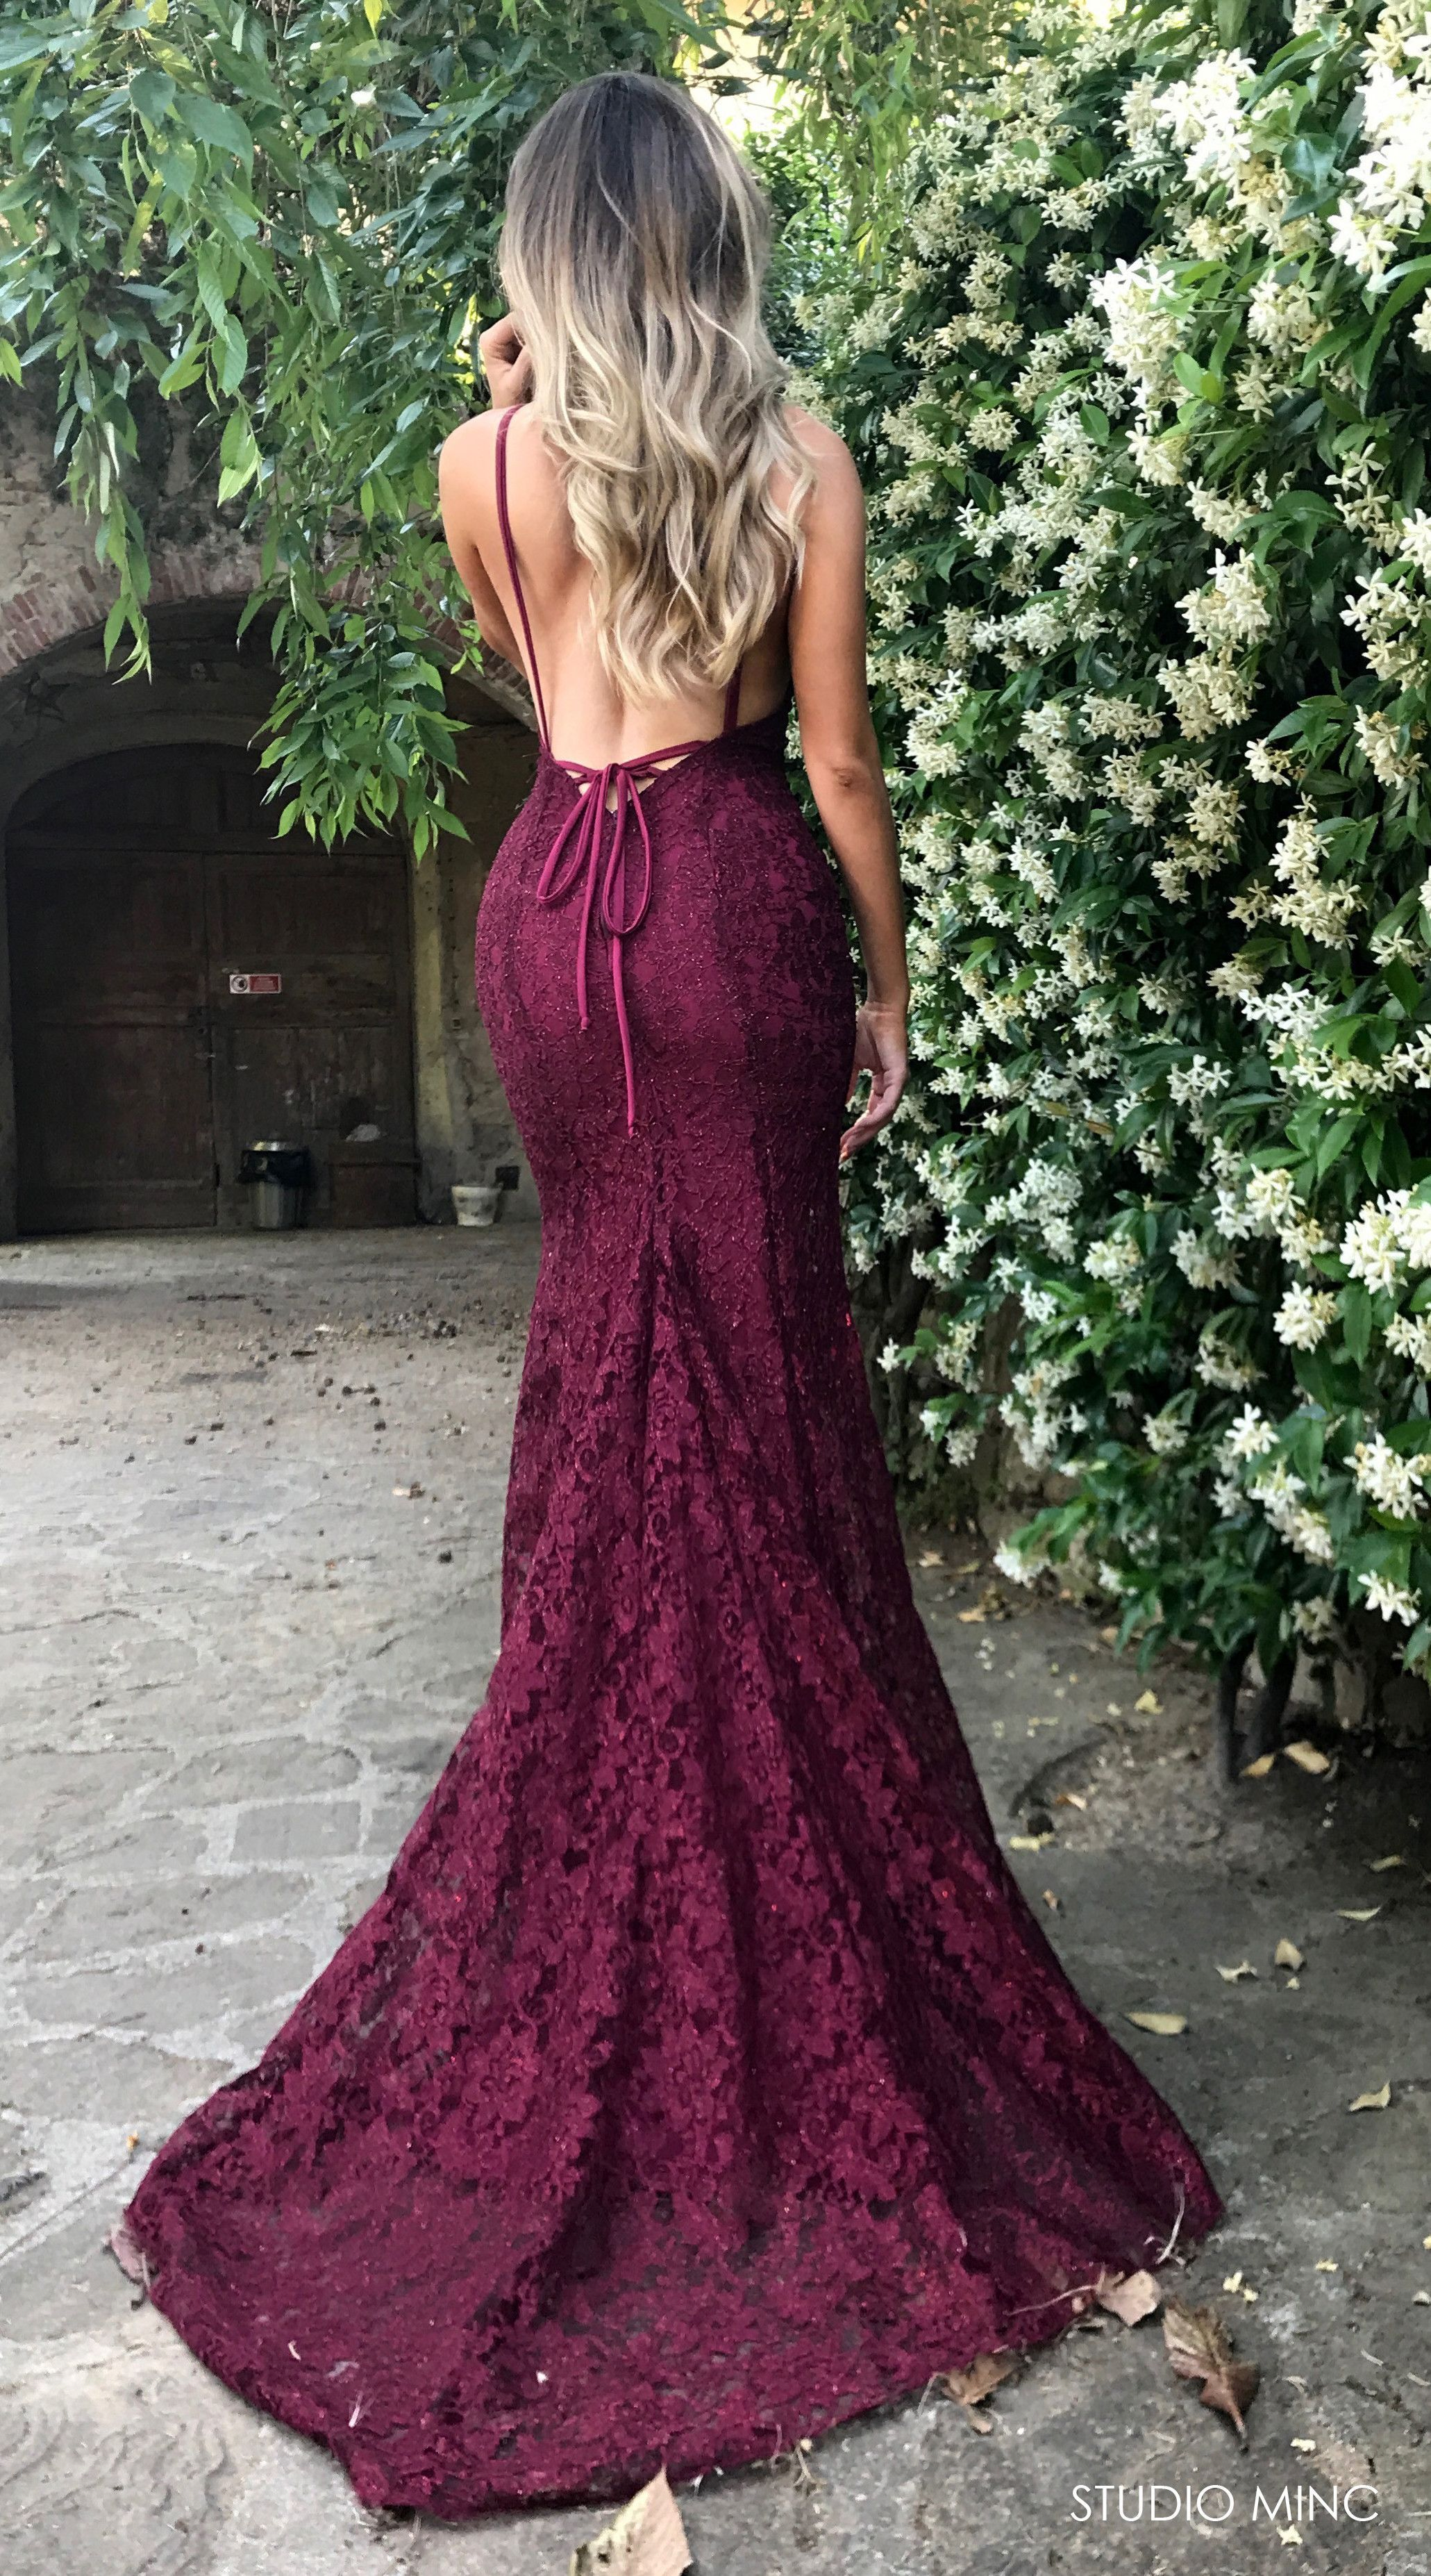 MAROON MYTHICAL - MAROON MYTHICAL DRESS BY STUDIO MINC #FORMAL